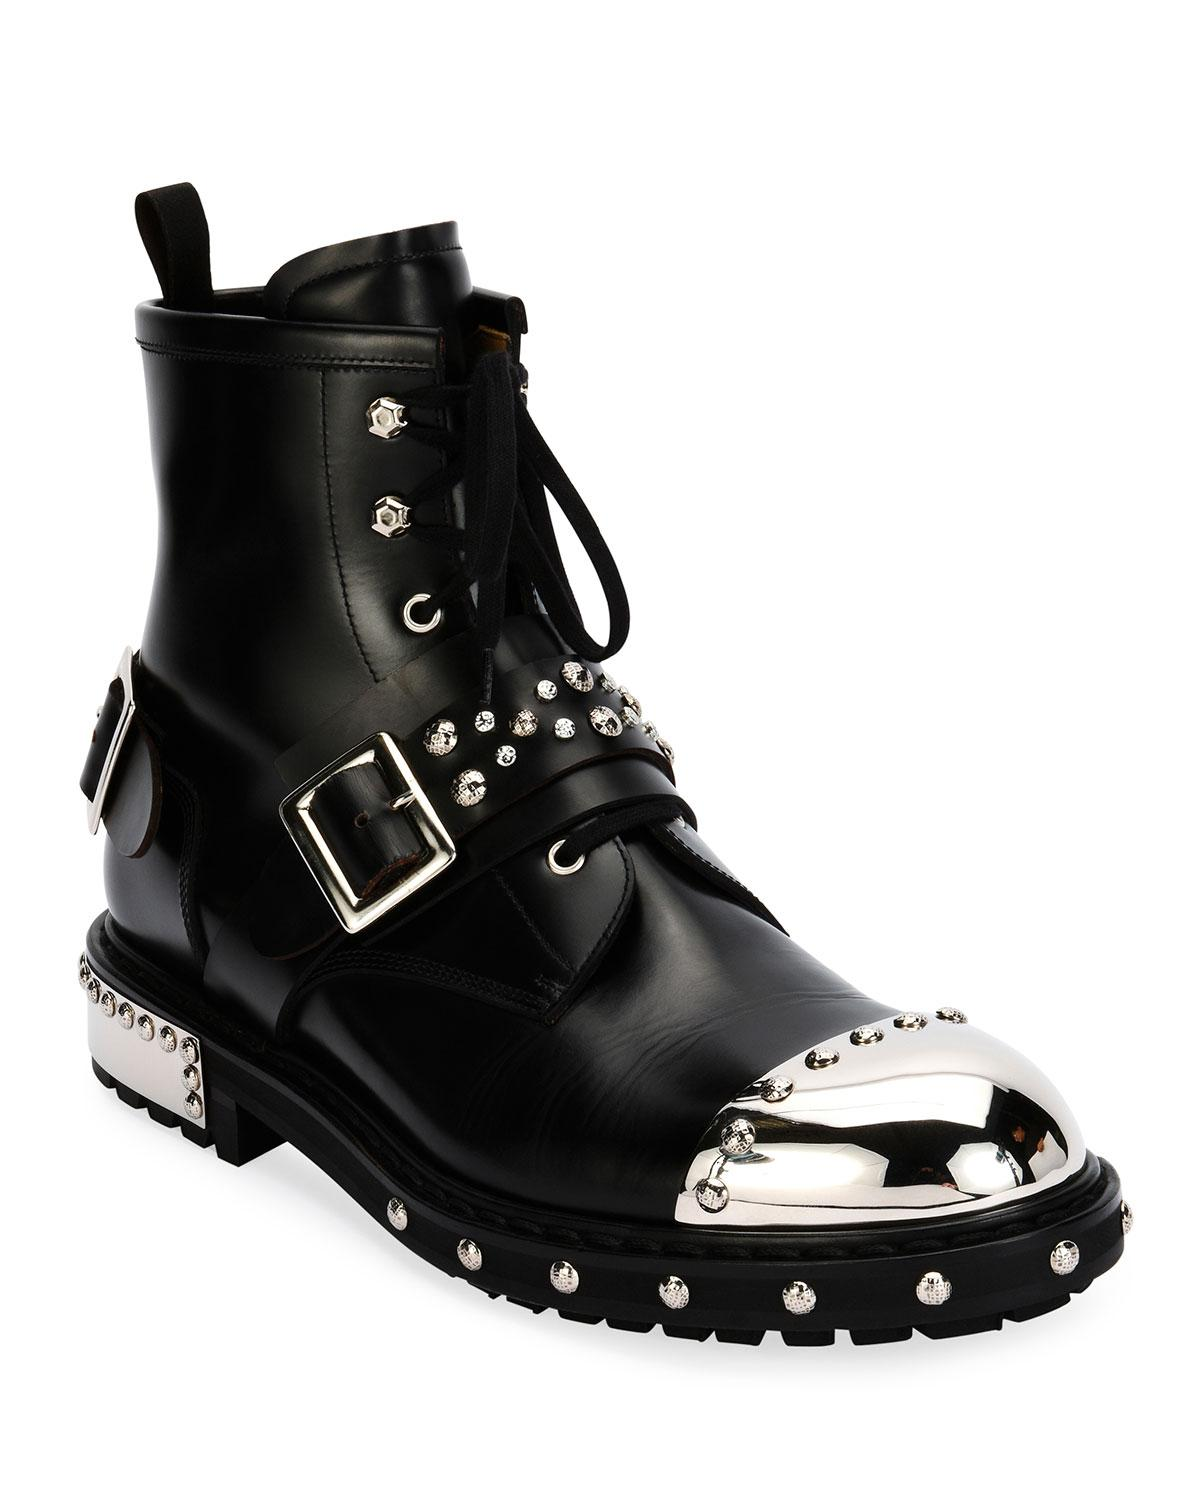 cbbb749ffc5b7 Lyst - Alexander McQueen Studded Cap-toe Leather Lace-up Boot in ...